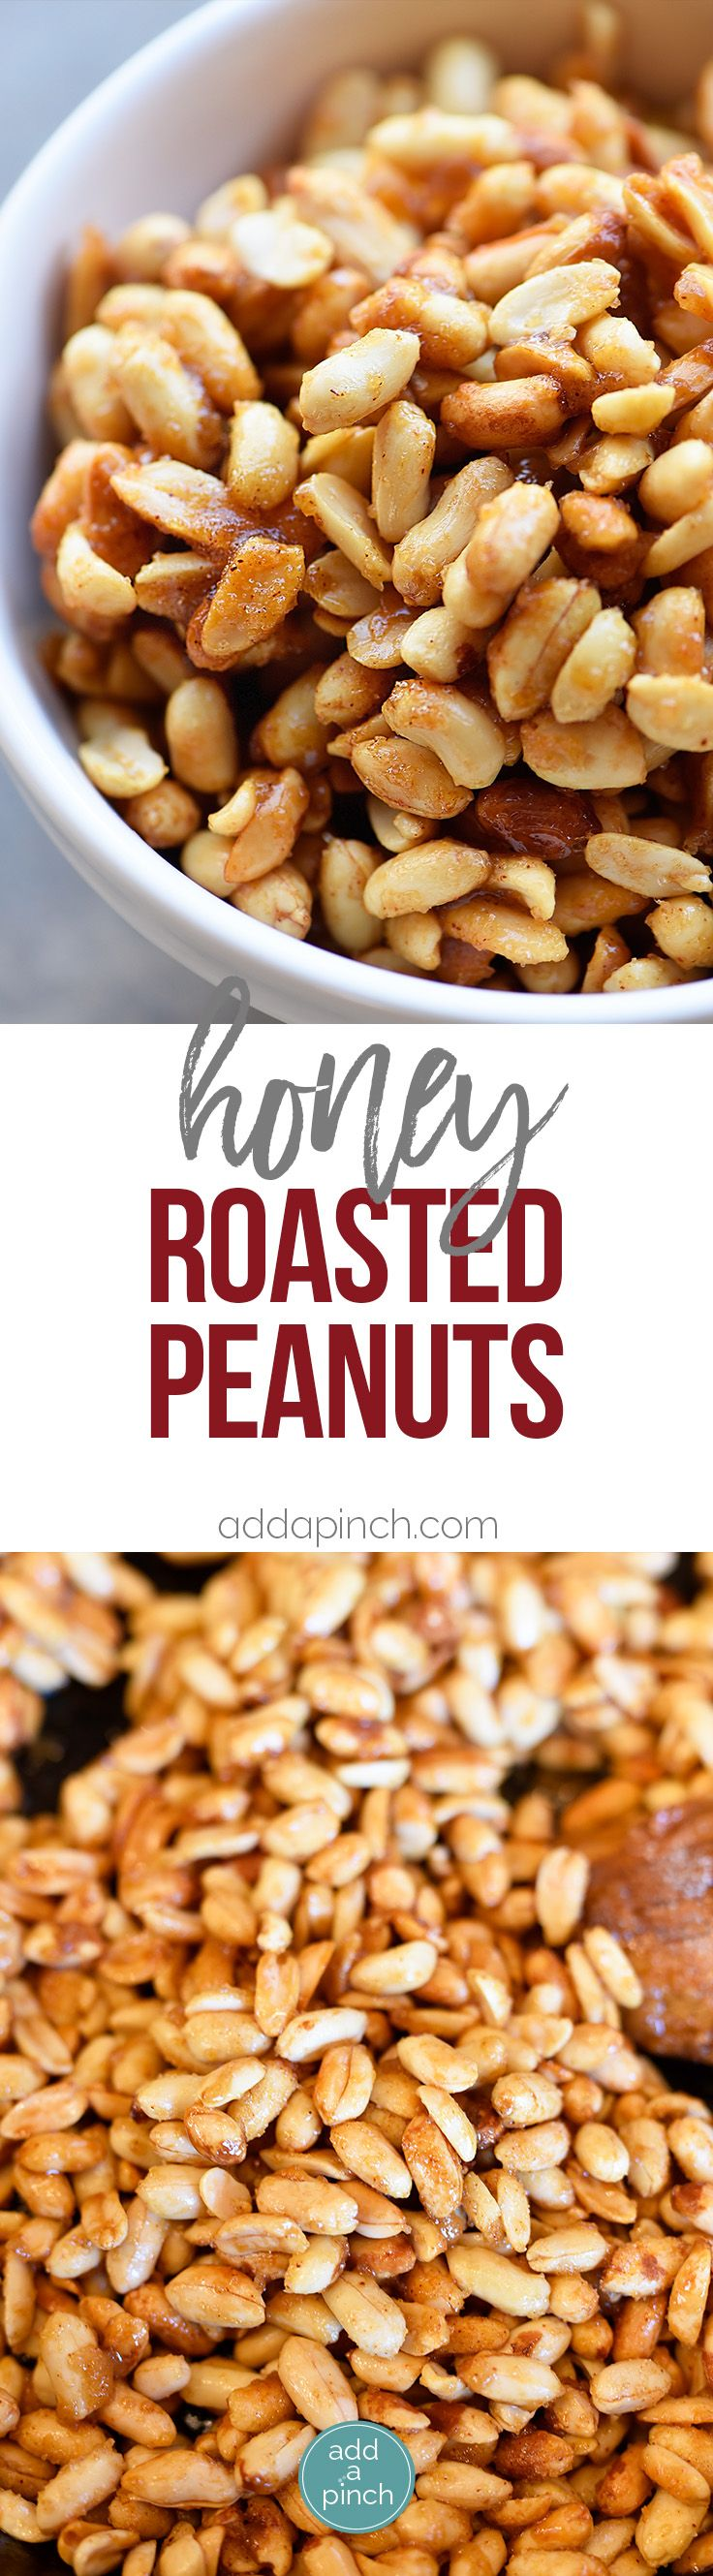 Honey Roasted Peanuts Recipe - Honey Roasted Peanuts make a delicious snack! Made with just four ingredients with one addition if you prefer them spicy! // addapinch.com